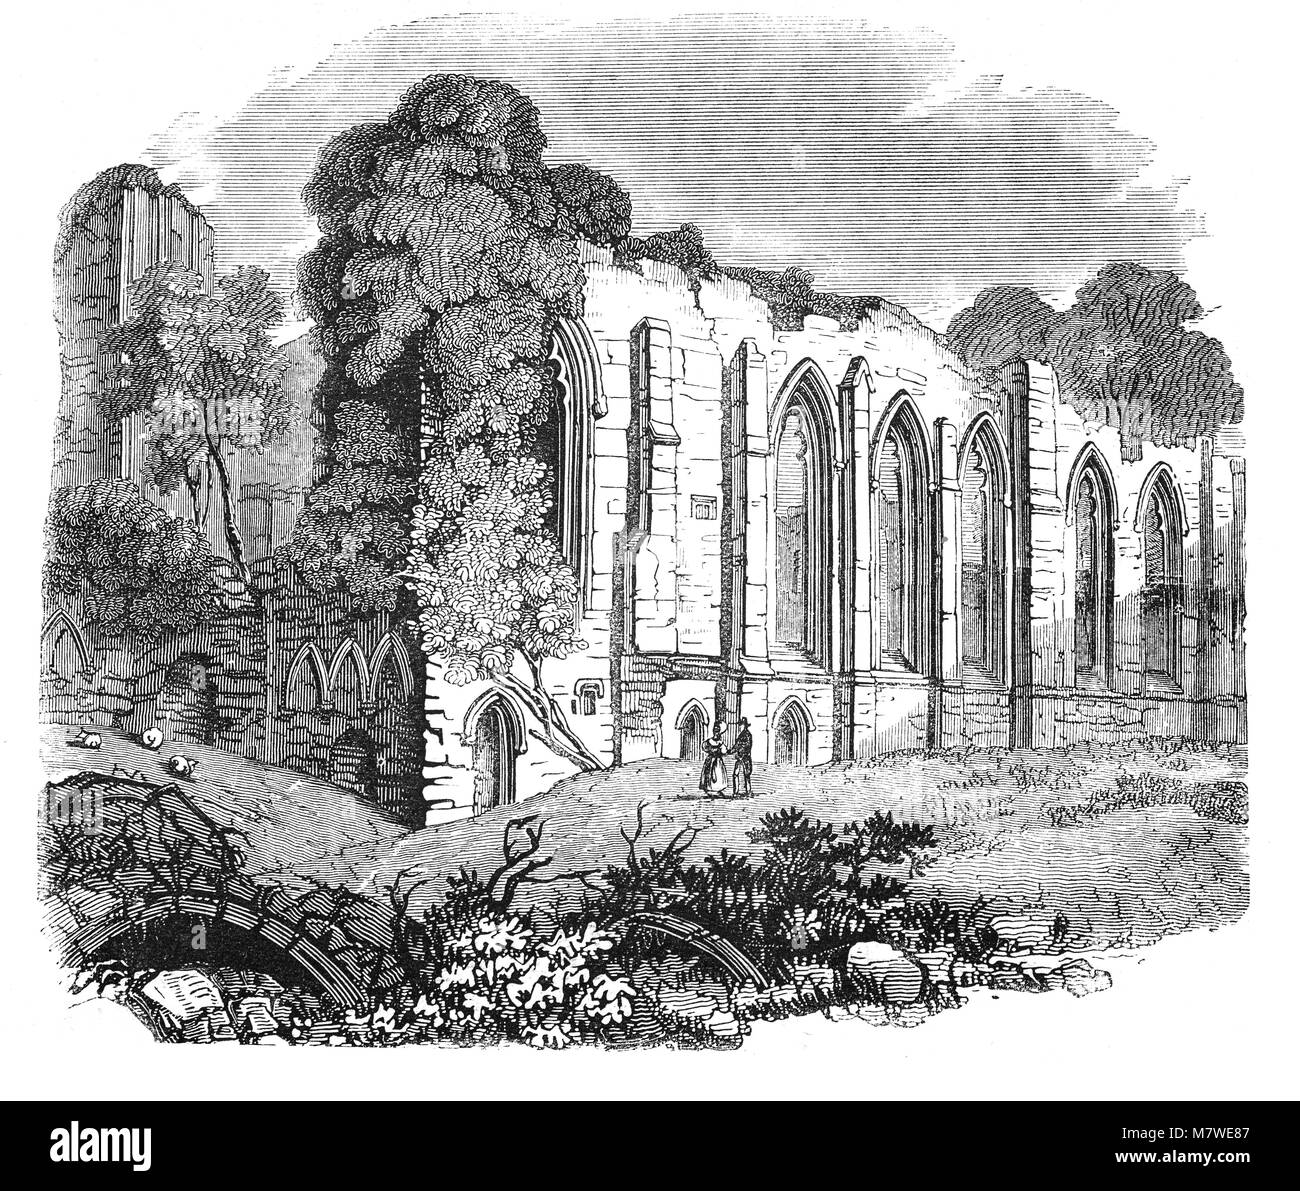 Easby Abbey or the Abbey of St Agatha is a ruined Premonstratensian abbey on the eastern bank of the River Swale - Stock Image